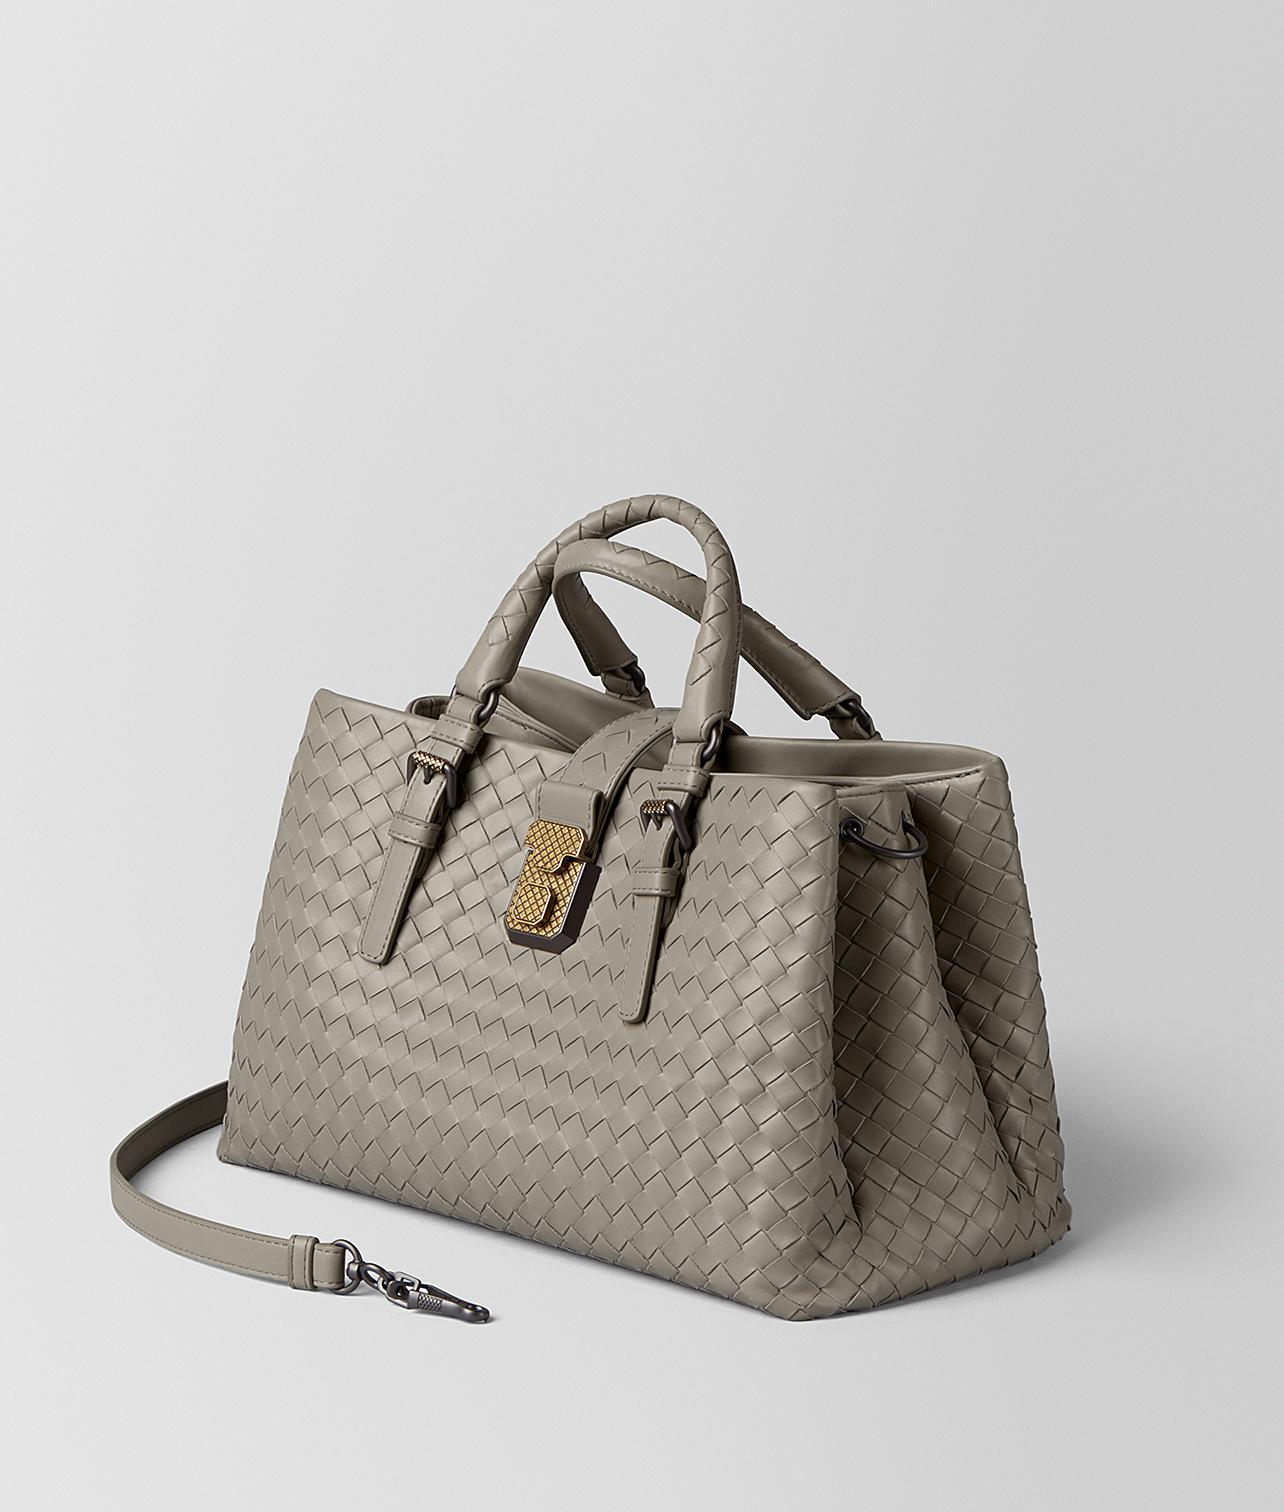 Lyst - Bottega Veneta Dark Cement Intrecciato Calf Roma Bag f9cb76f7f6ea9